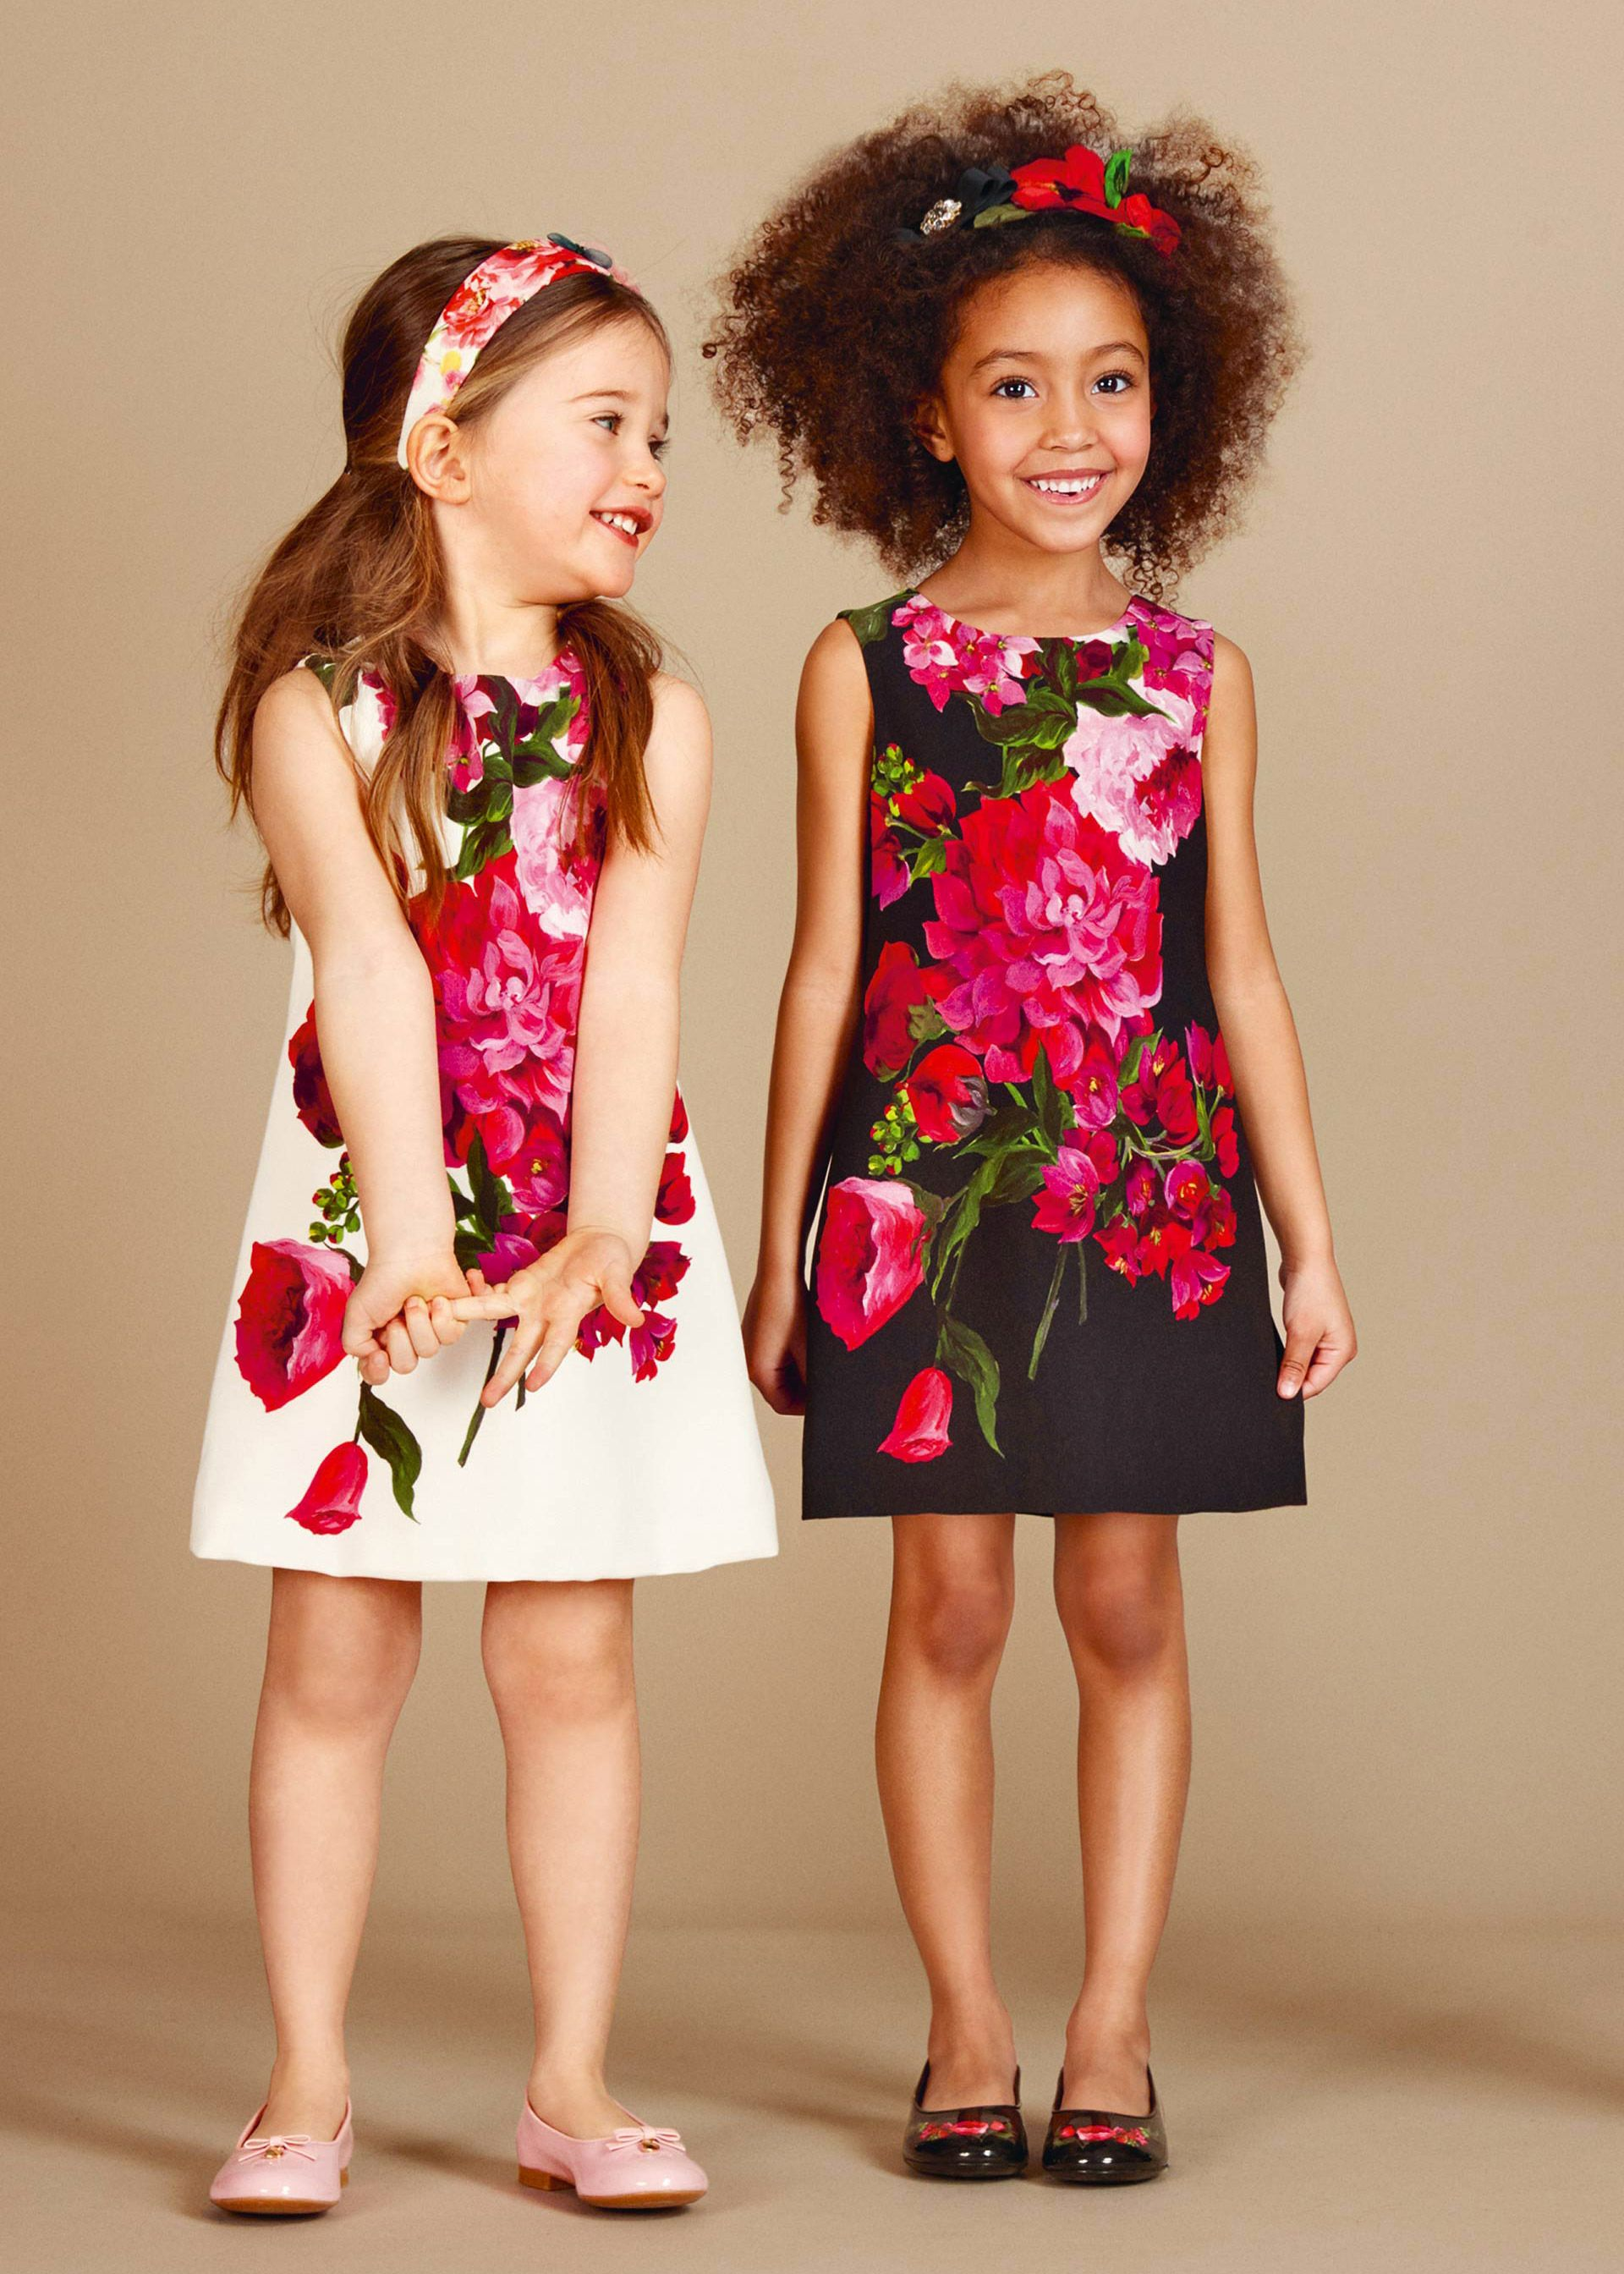 b1d7e42e4 Discover the new Dolce & Gabbana Children Girl Collection for Fall Winter  2016 2017 and get inspired.